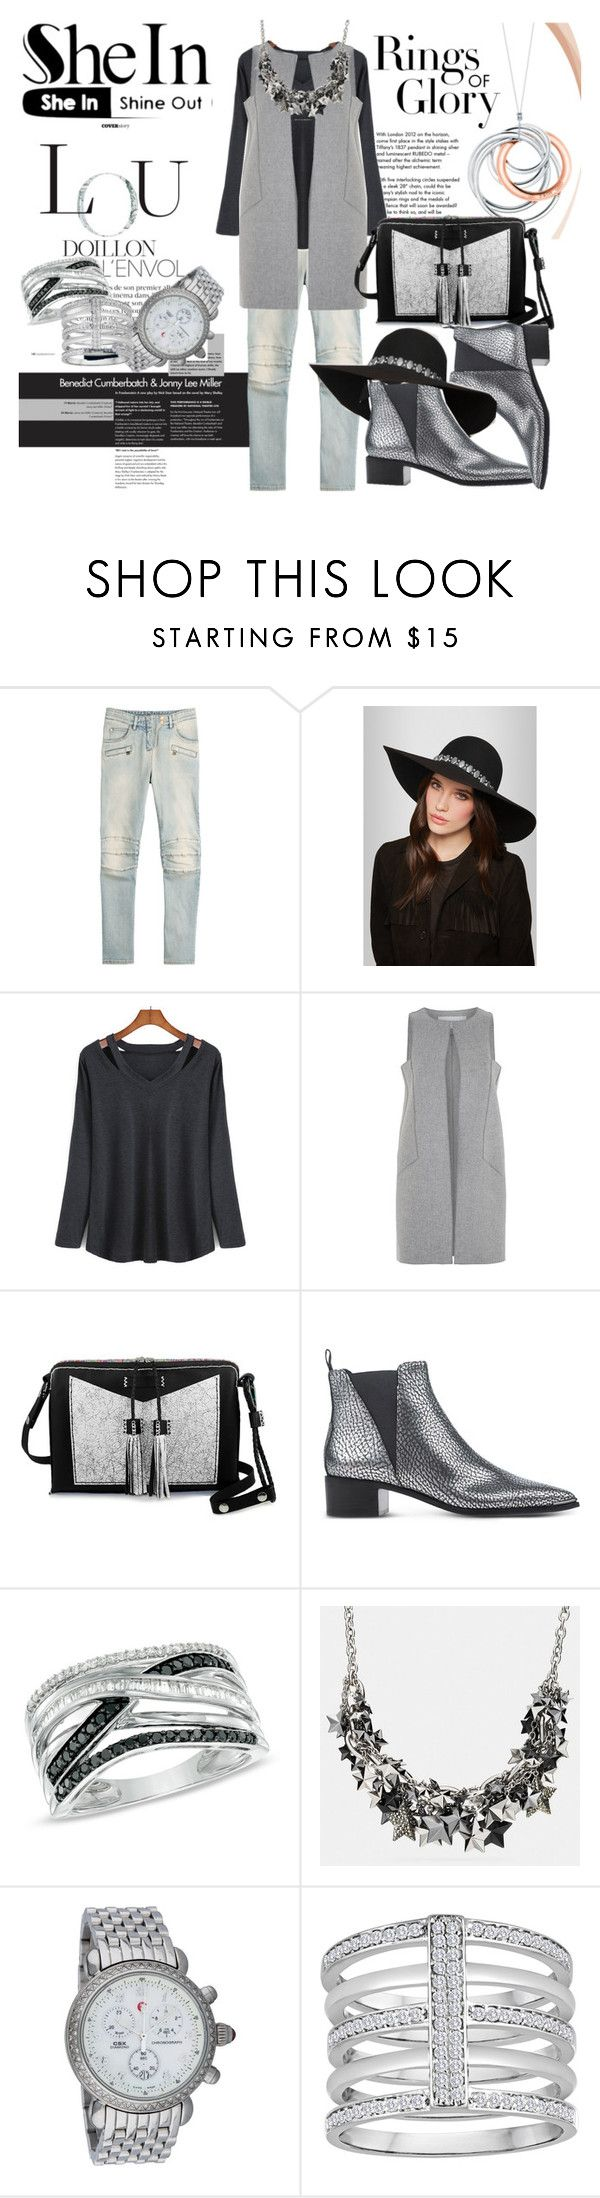 Untitled #180 by denisa-marcu on Polyvore featuring Amanda Wakeley, Balmain, Acne Studios, Carianne Moore, Michele, Coach, Yves Saint Laurent and Tiffany & Co.